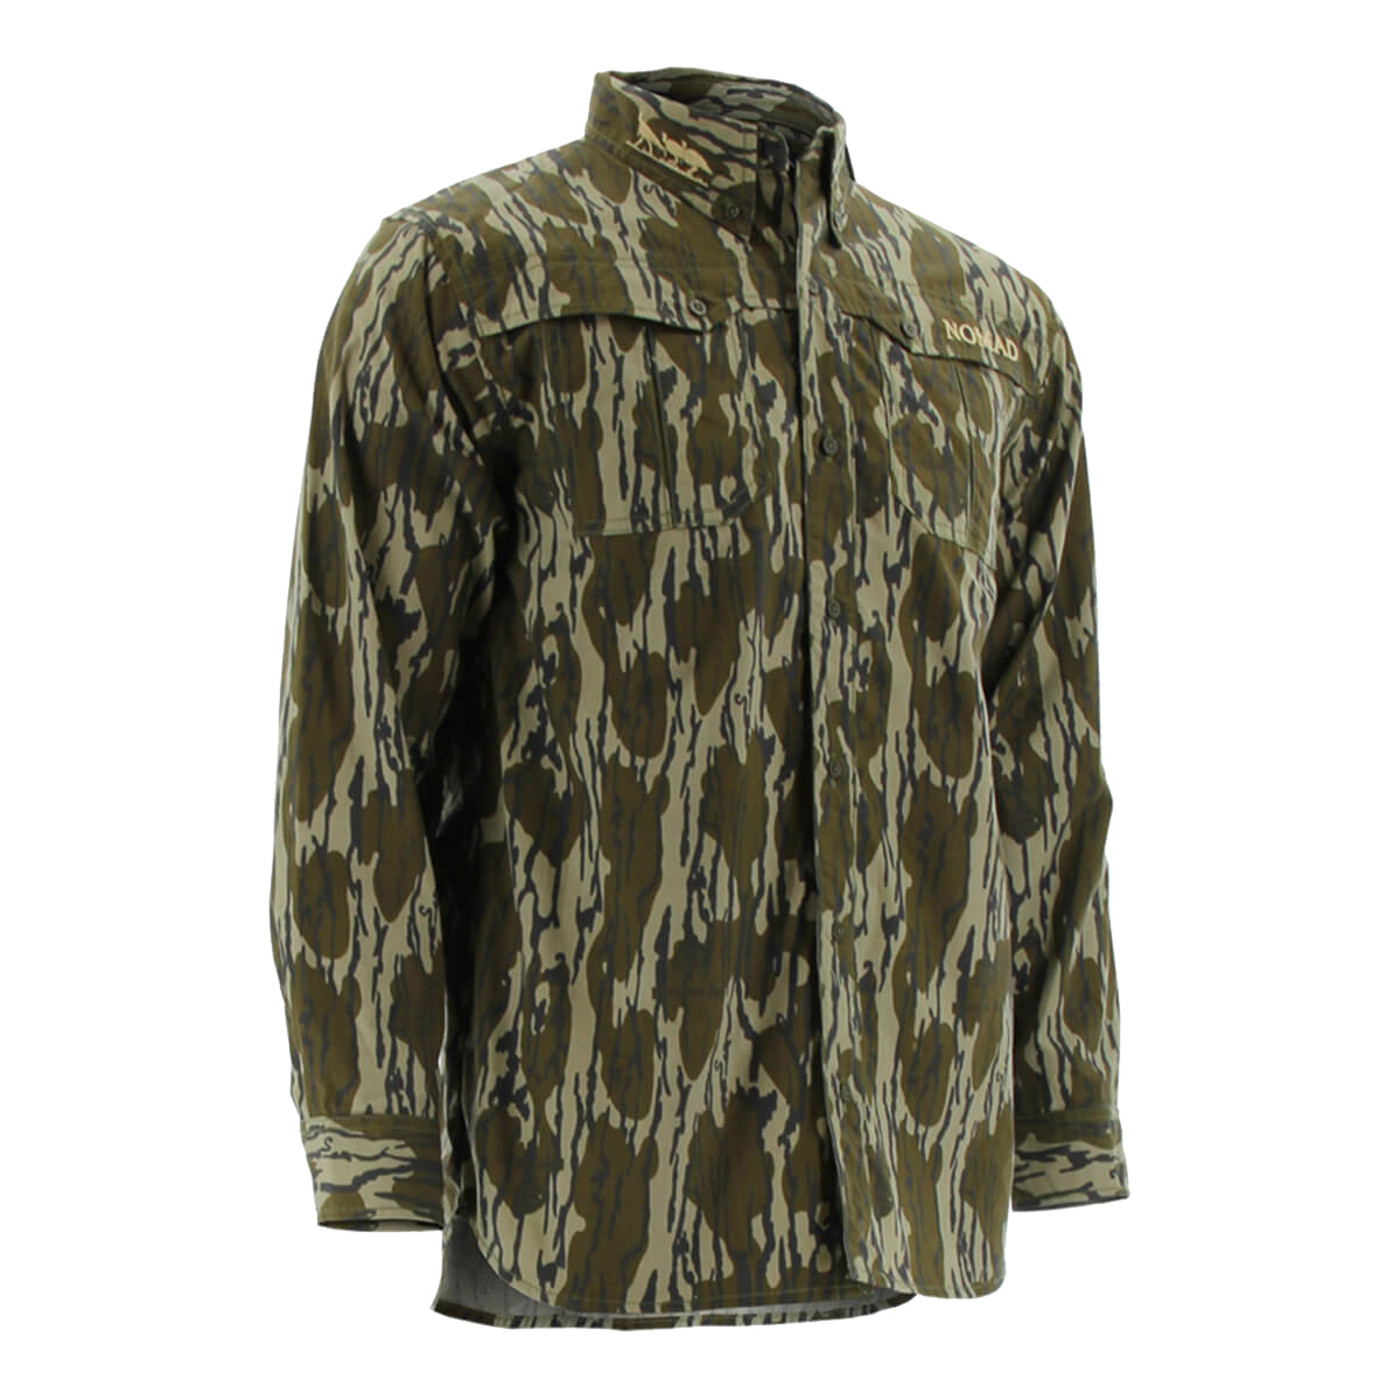 Nomad NWTF Long Sleeve Button Down Shirt in Mossy Oak Bottomland Color